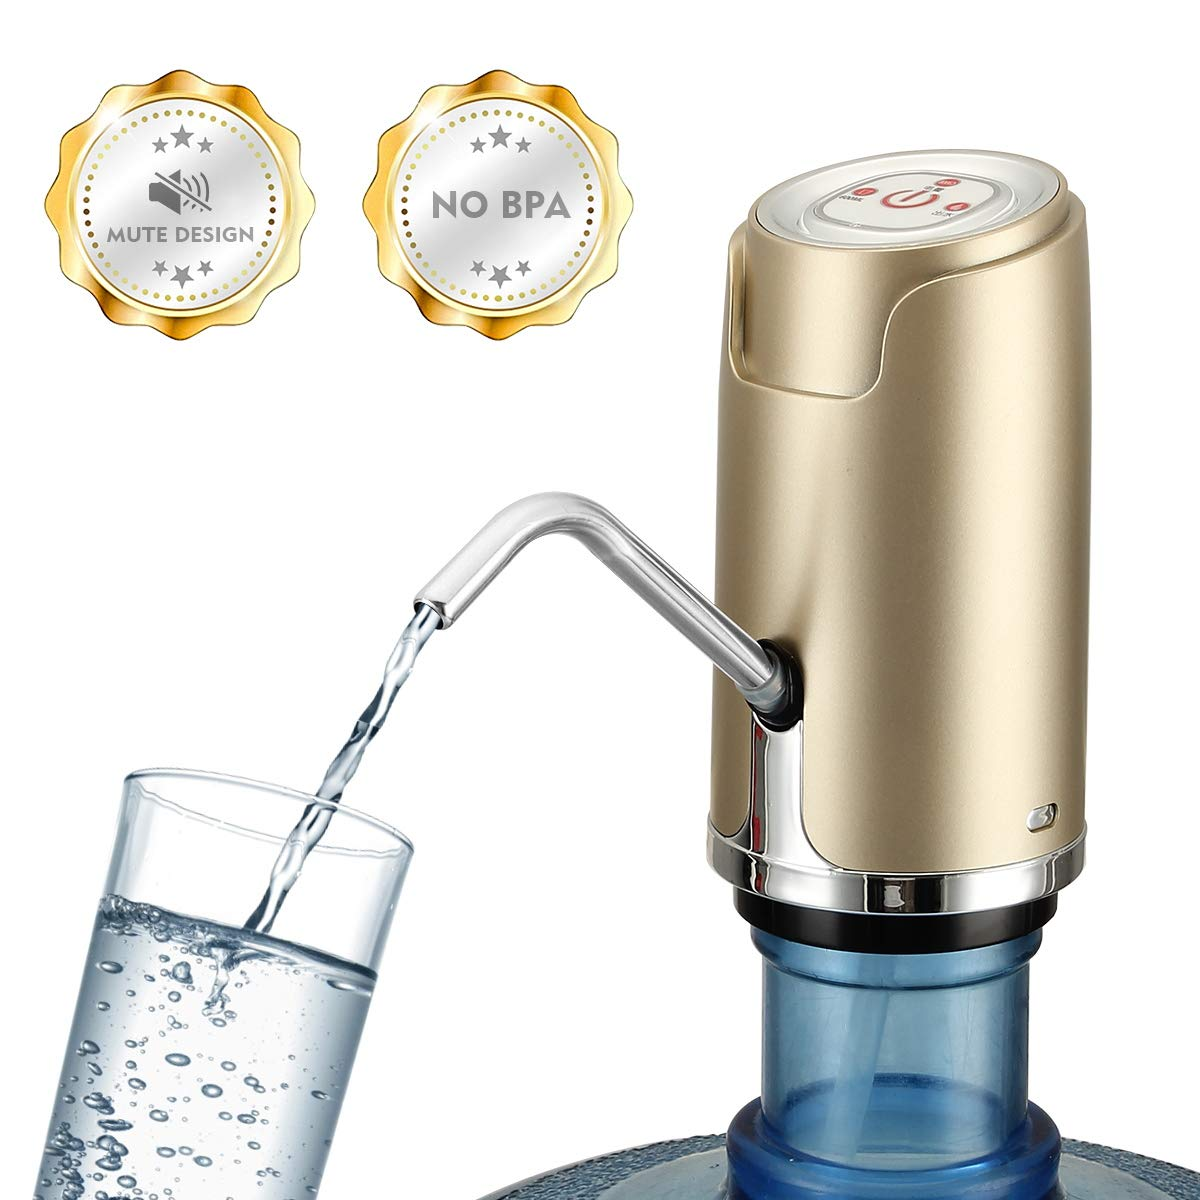 【Upgraded Version】Water Bottle Pump, USB Charging Water Dispenser-Protable Compact Electric Drinking Water Pump, Silent Design-Fits for 2 to 5 Gallon Universal Water Bottle       by Tjxwsdzswyxgs